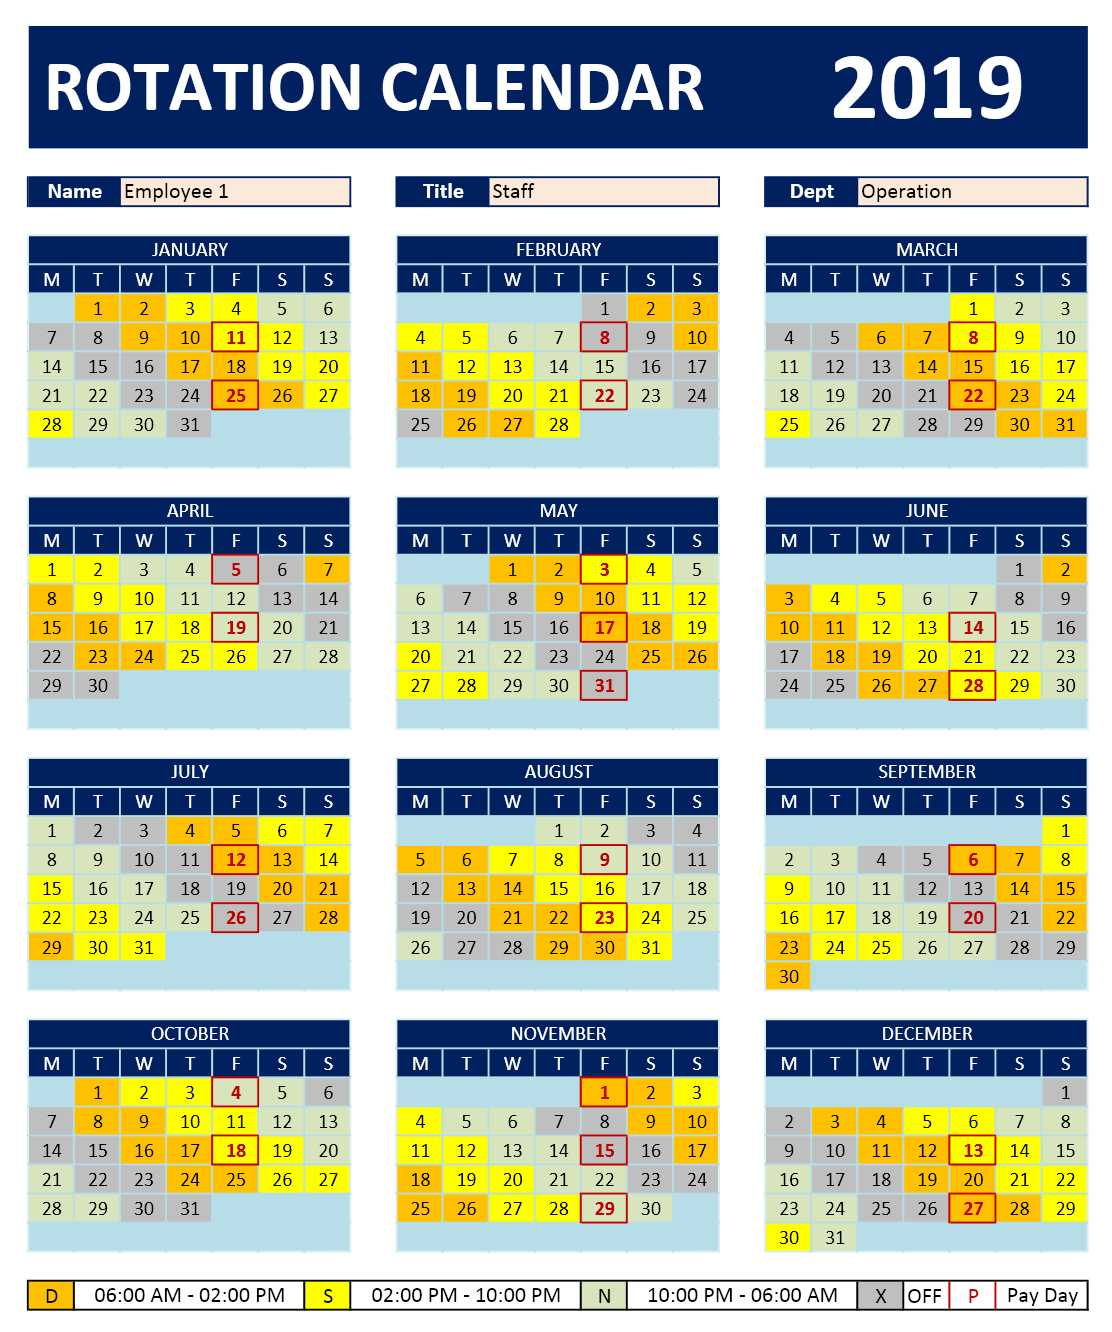 Shift Work Rotation Schedule Calendar Excelcalendars